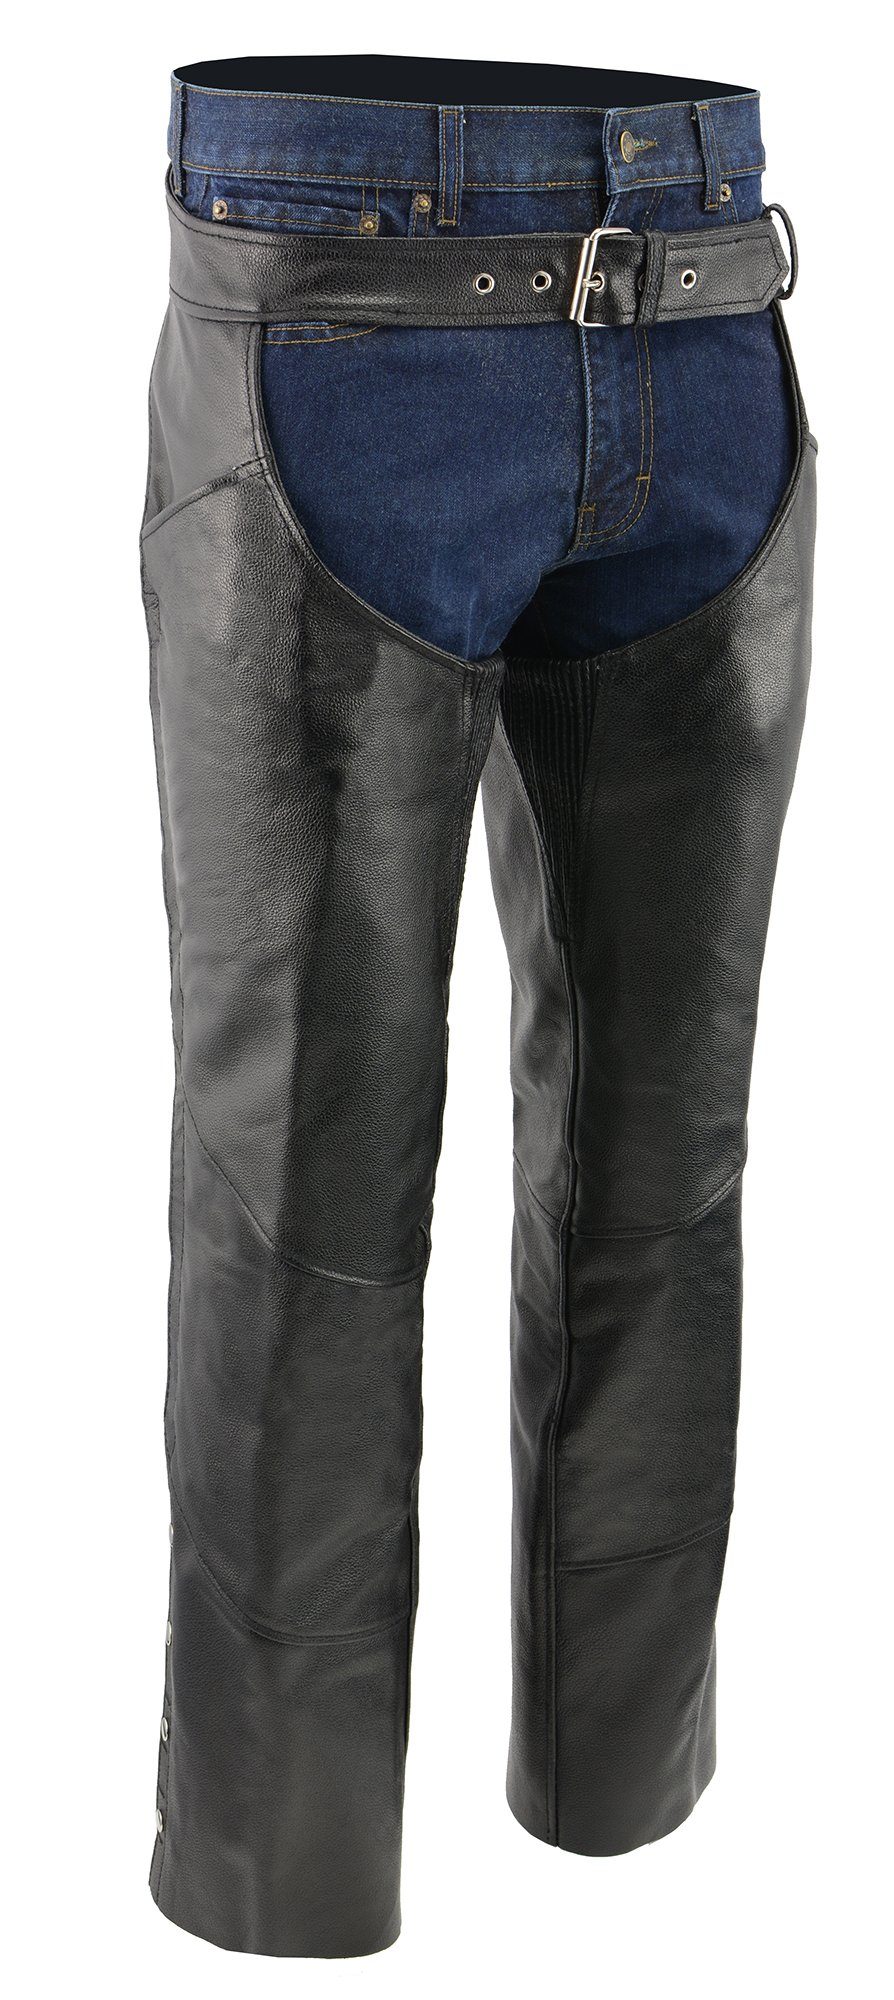 M-BOSS MOTORCYCLE APPAREL-BOS15506-BLACK-Men's zip-out insulated pant style motorcycle leather chaps.-BLACK-X-LARGE